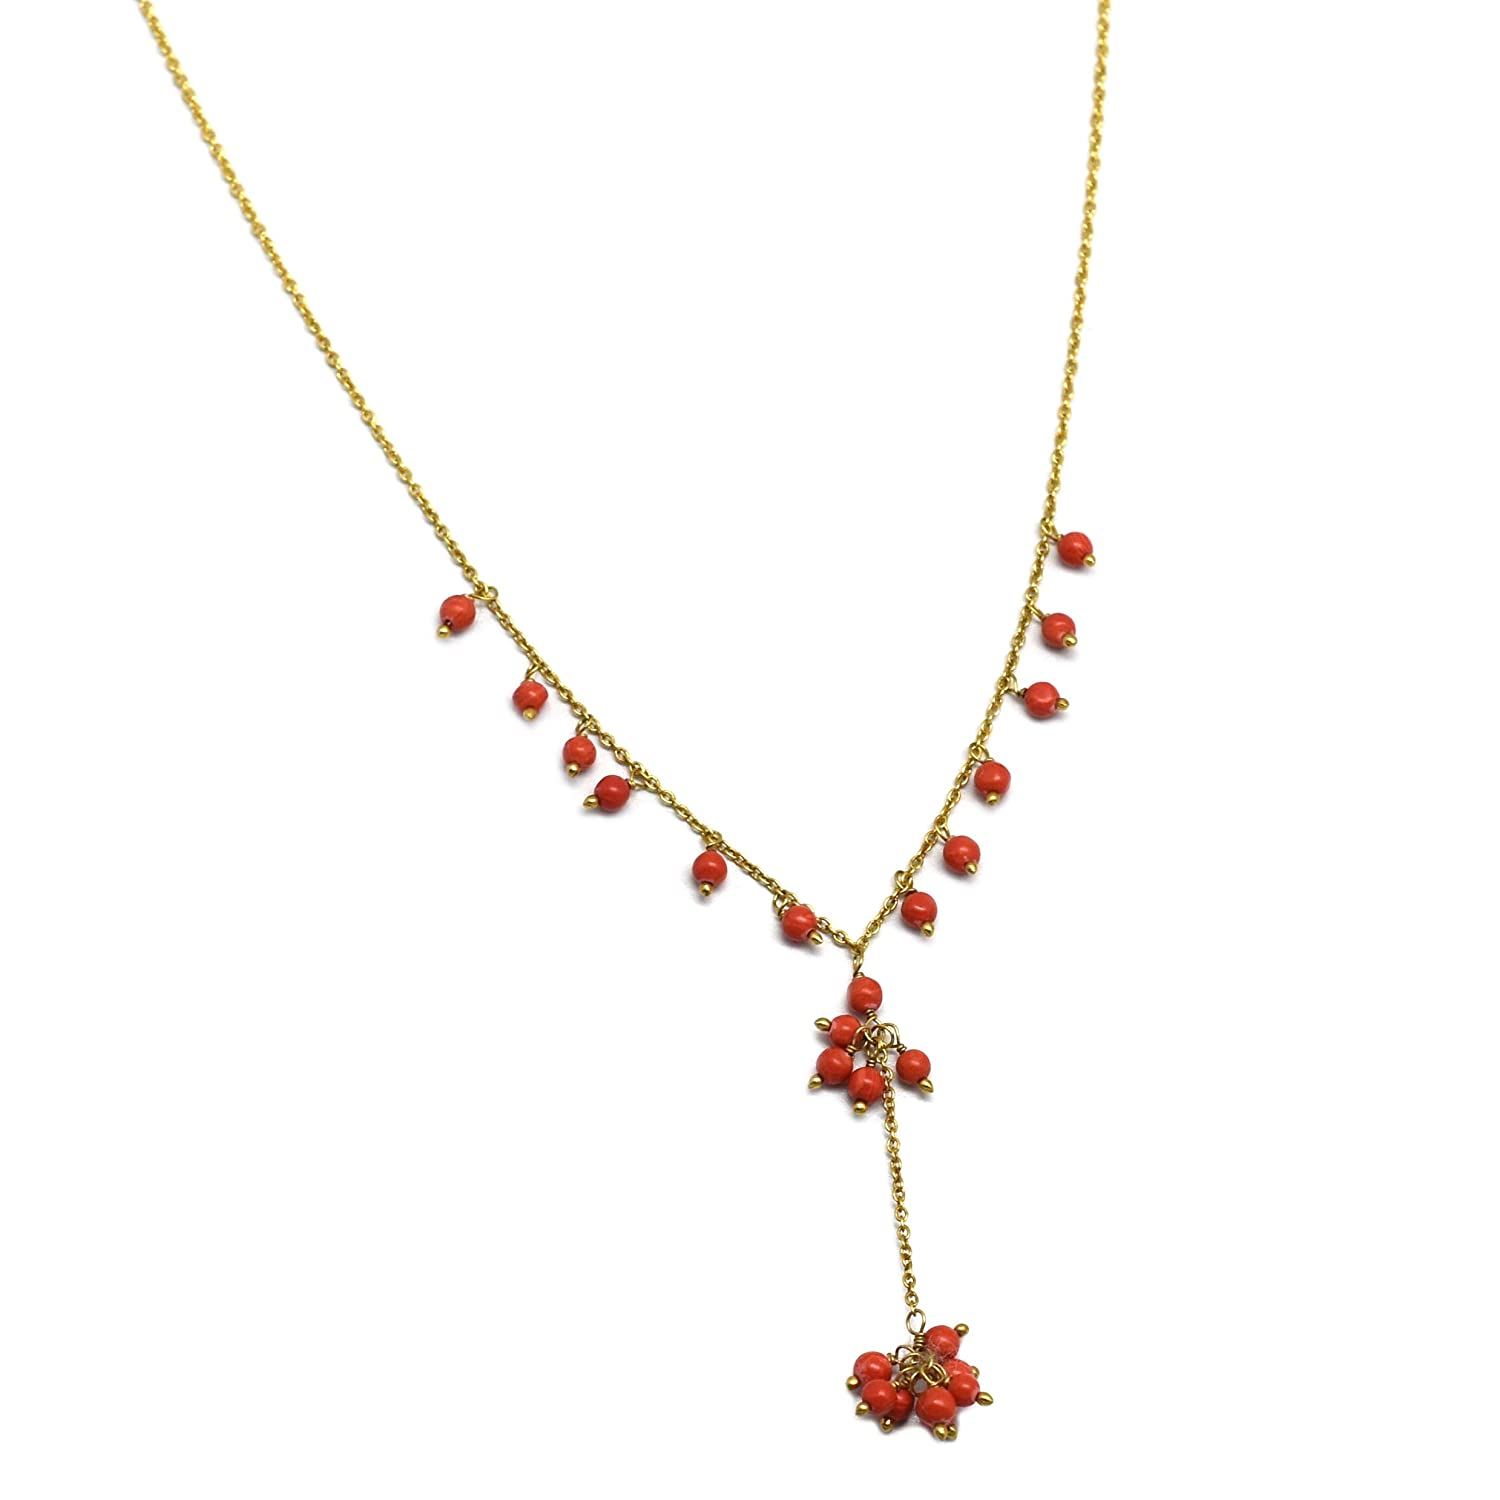 Collection The Chain Necklaces 22k Yellow Gold Plated Coral Beads Fashion Jewelry Chain Necklaces Gifts for her V